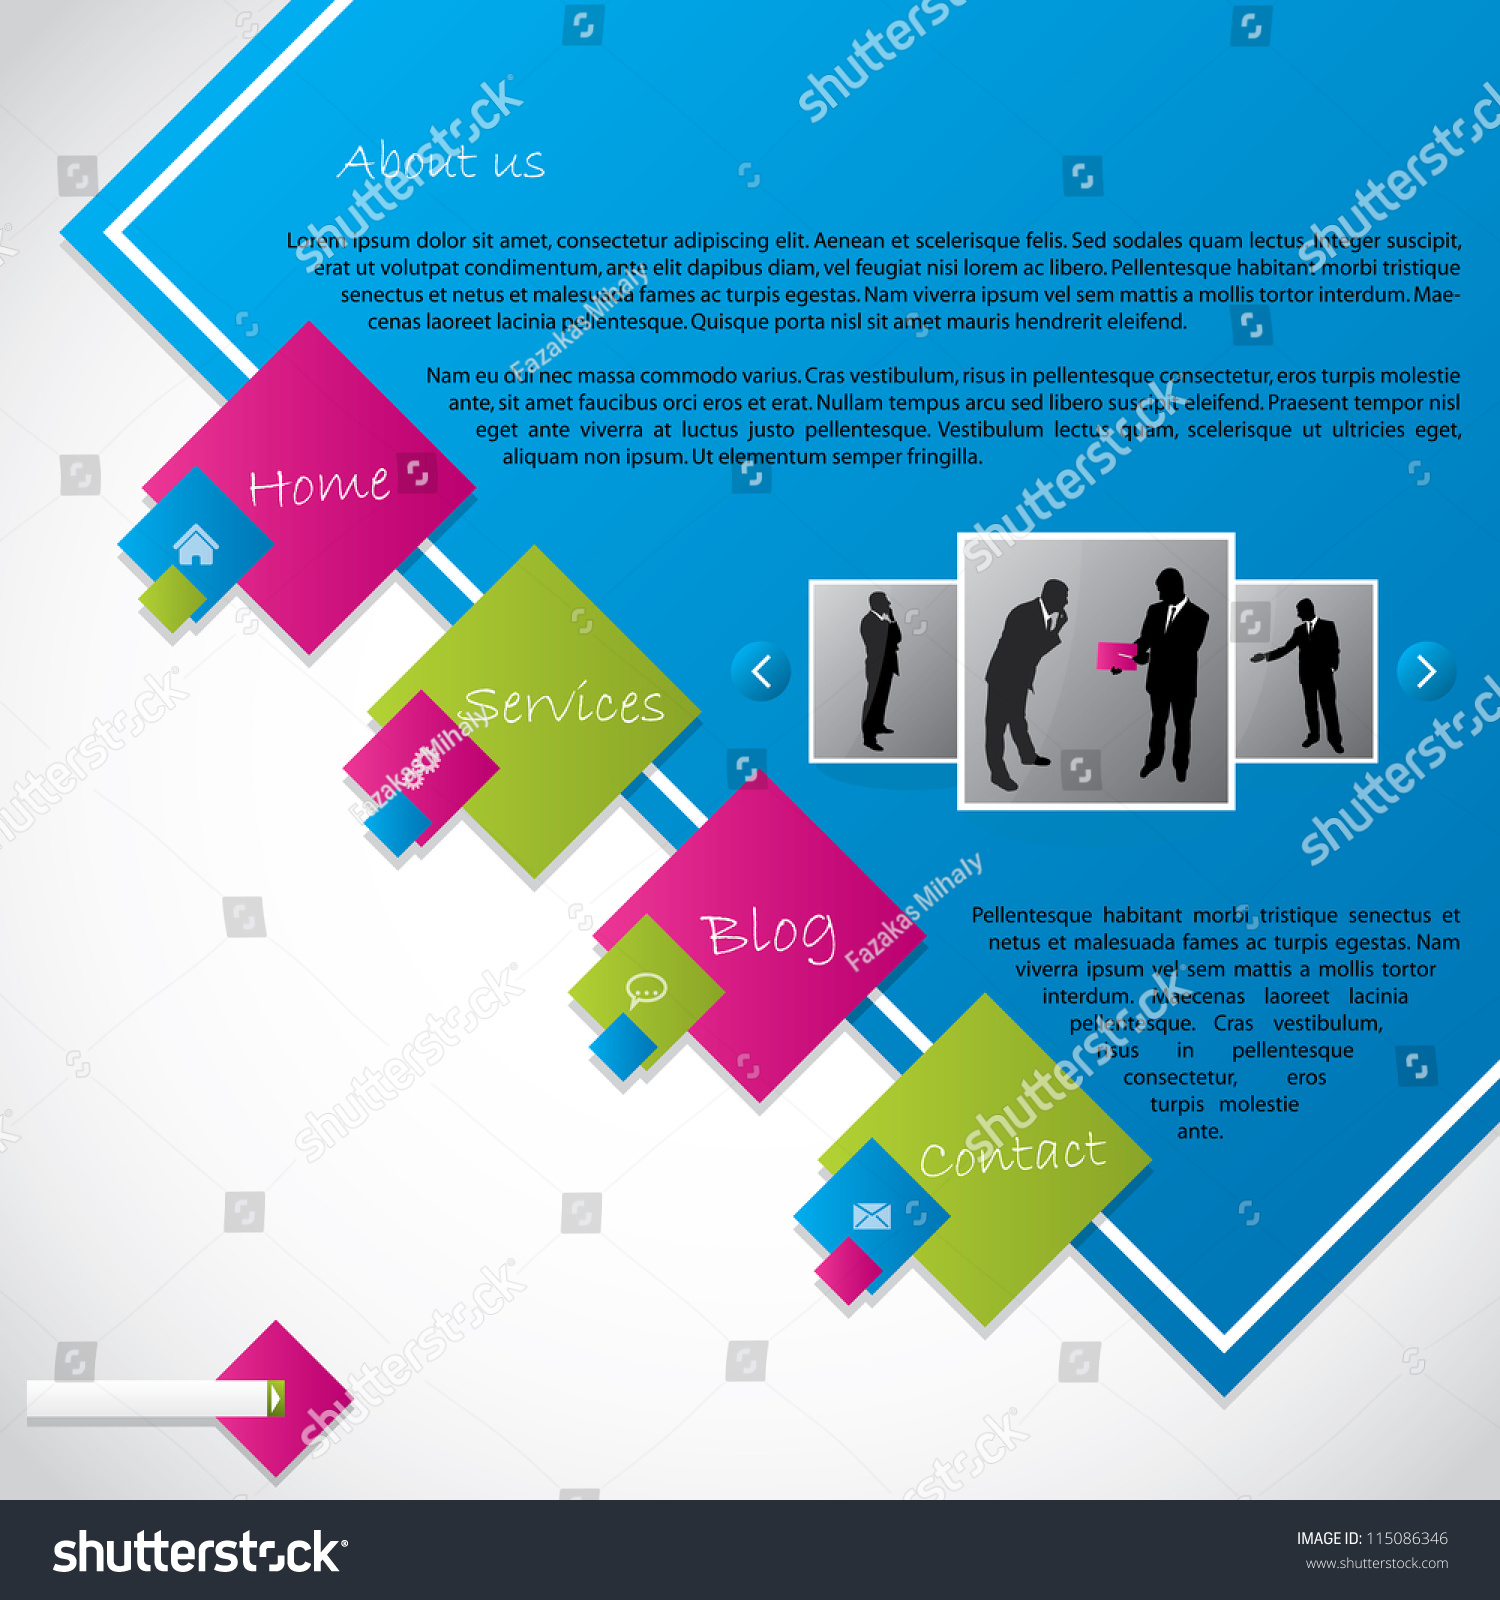 Cool colors web design - Cool New Web Template Design With Vivid Colors